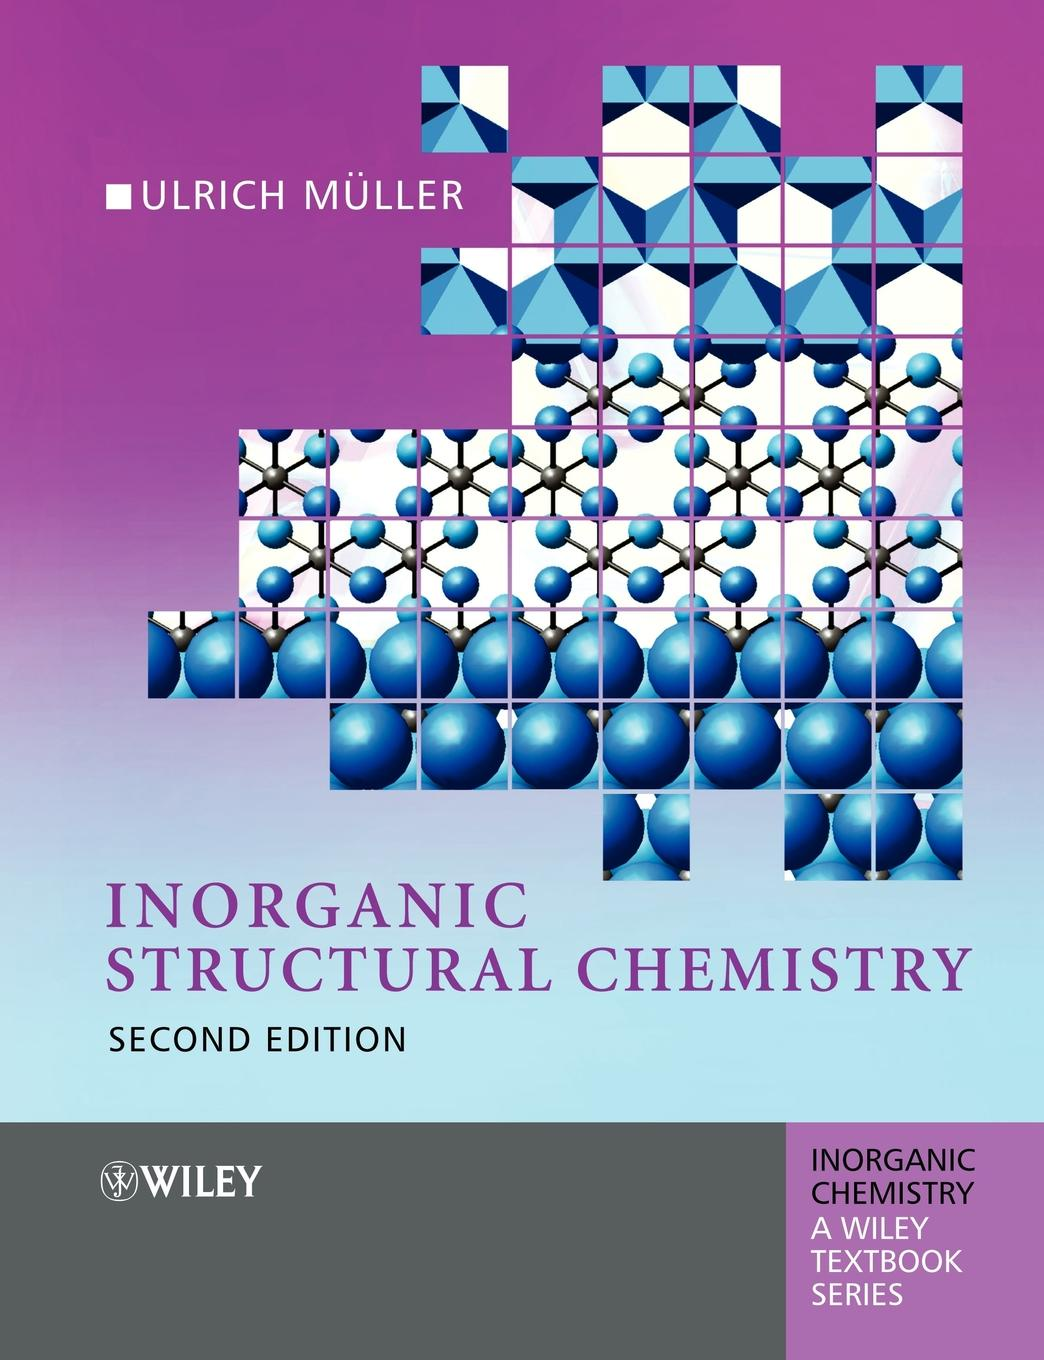 Muller Inorganic Structural Chemistry 2e dermot o hare local structural characterisation inorganic materials series